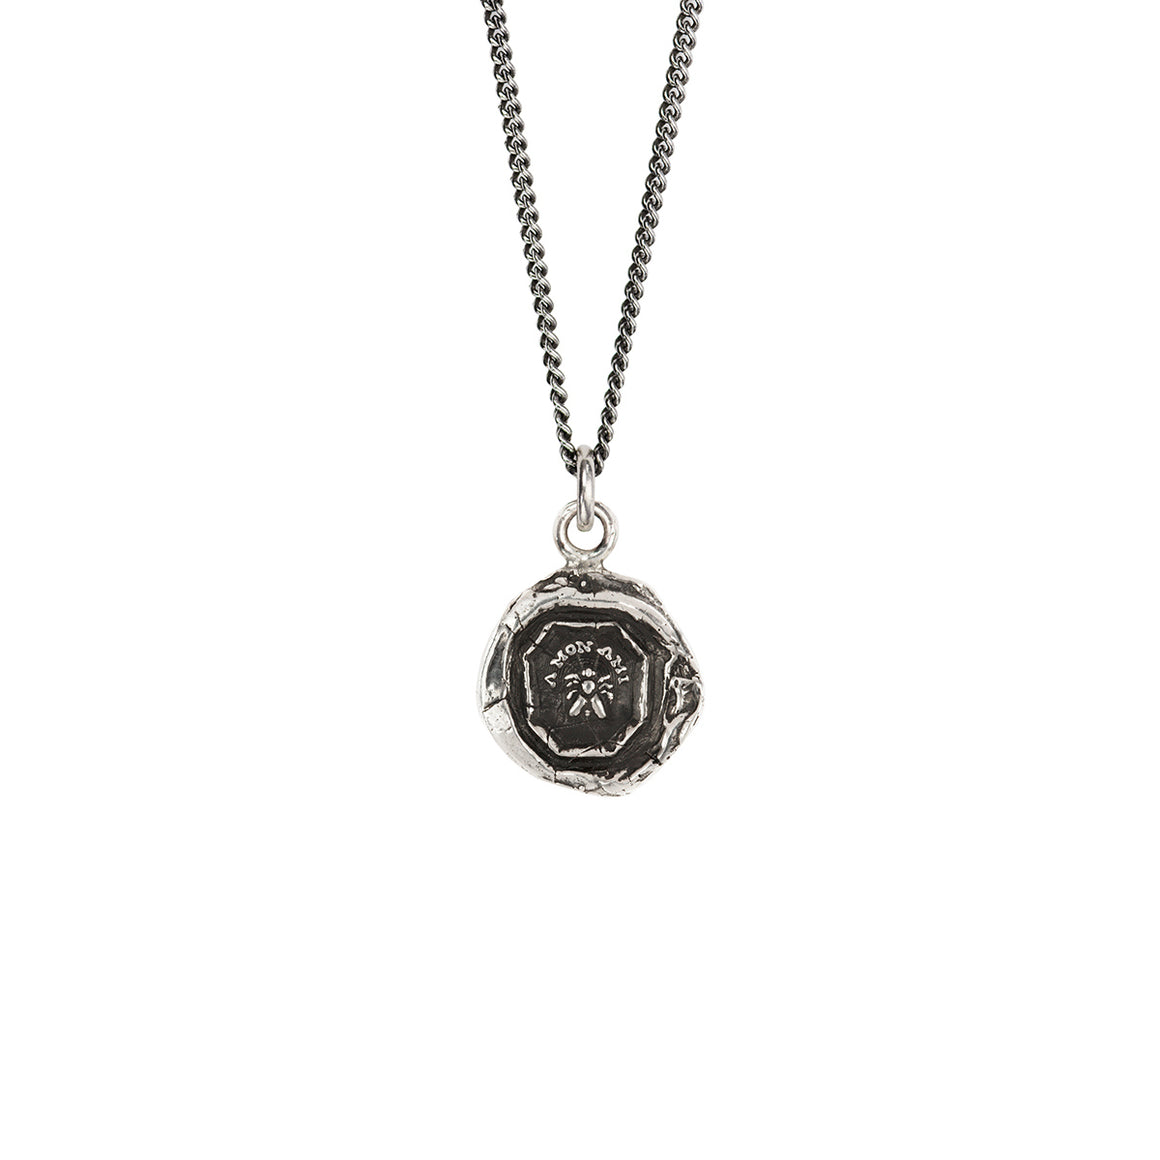 PYRRHA MY FRIEND TALISMAN NECKLACE